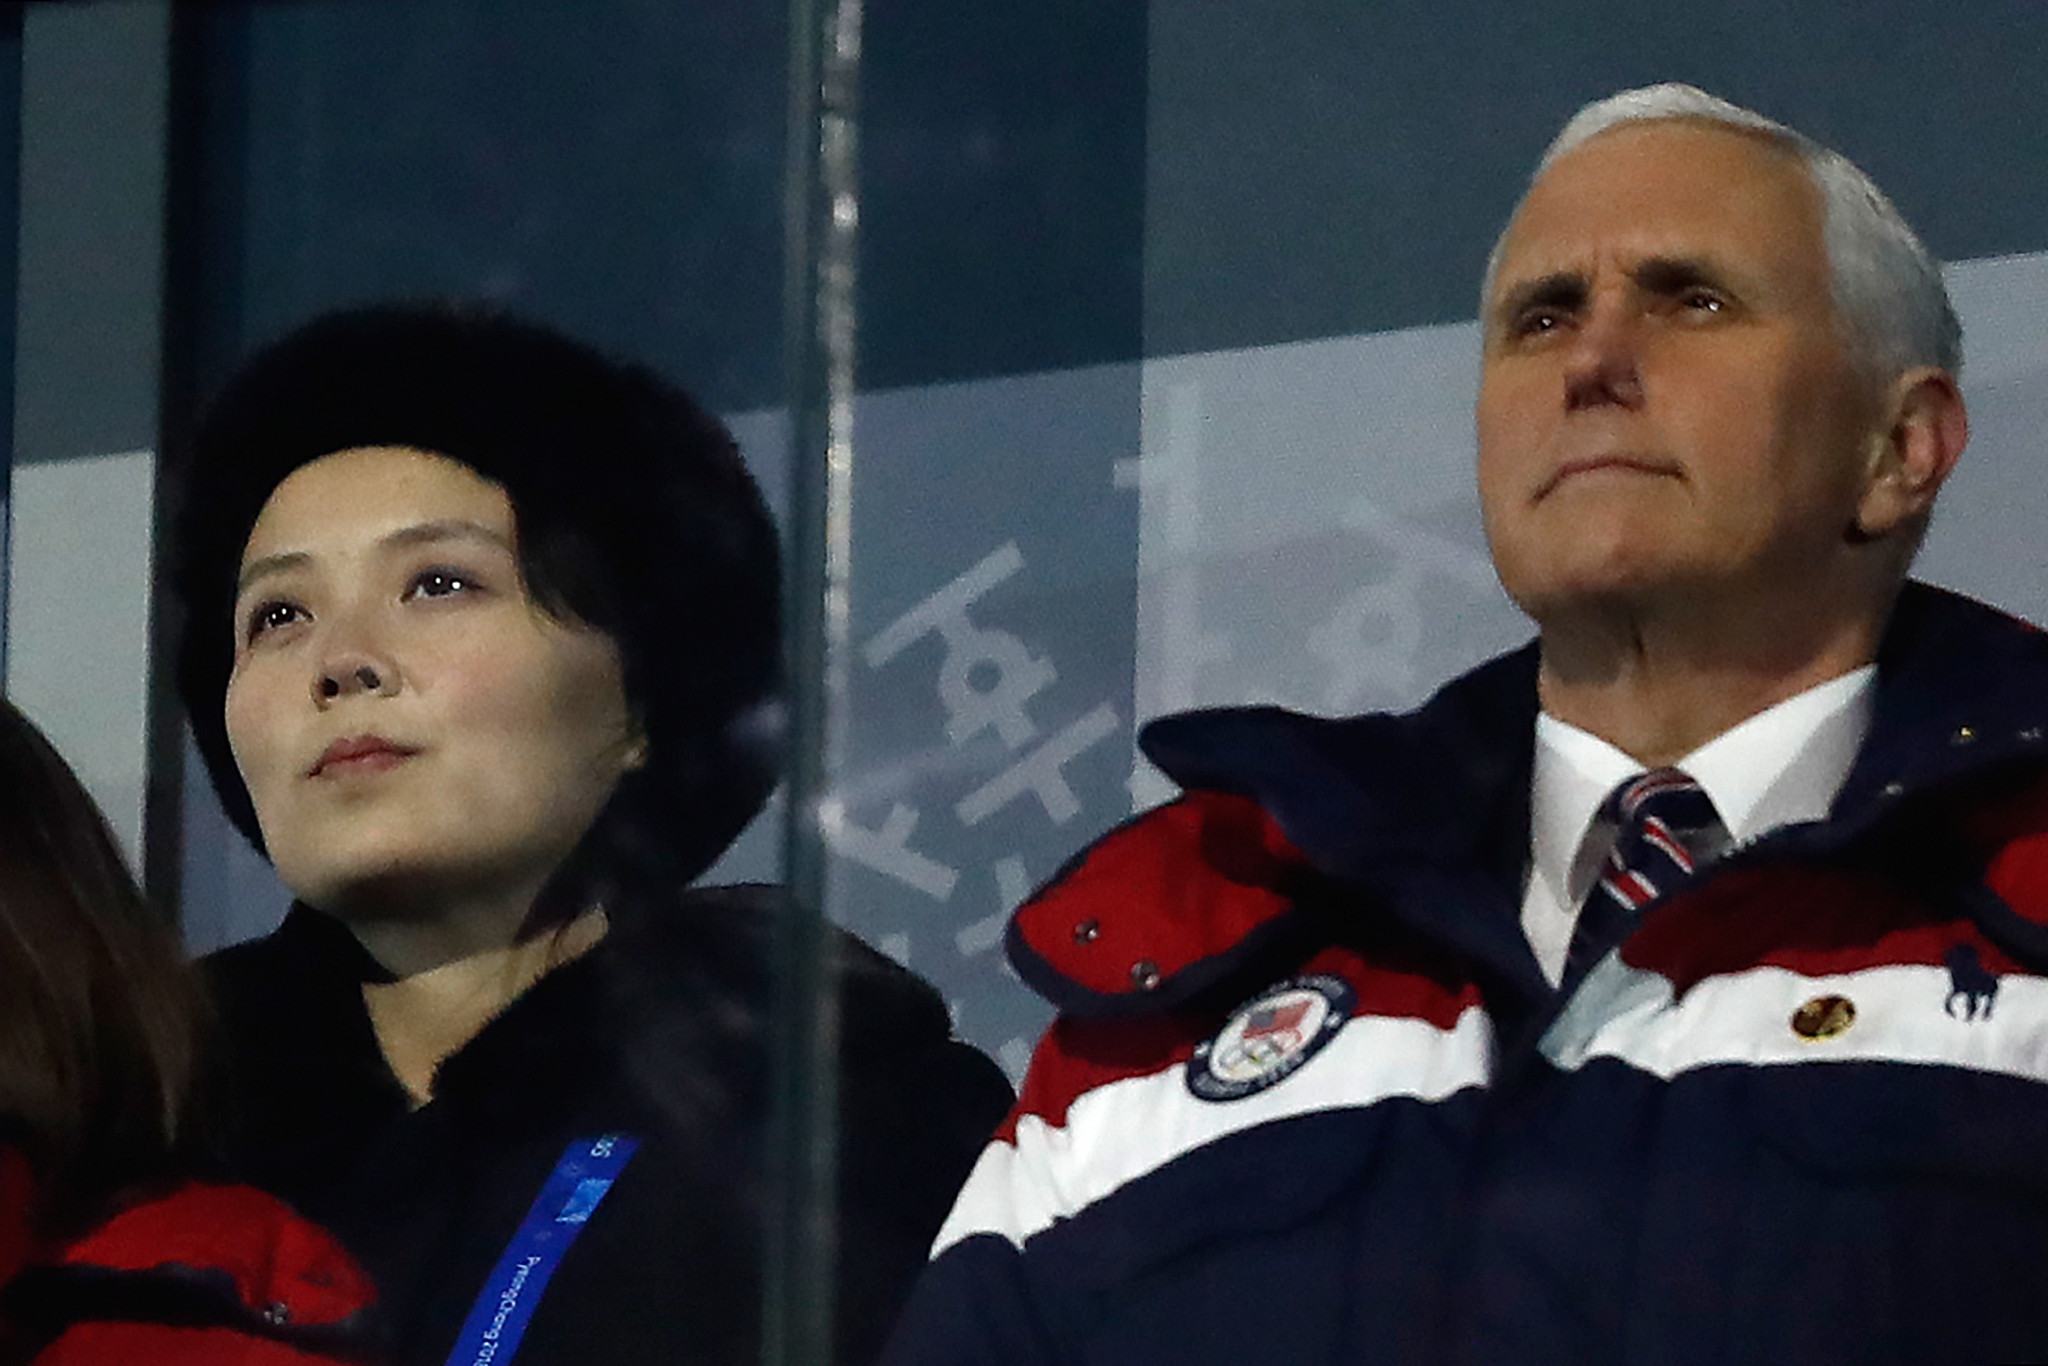 US Vice-President Mike Pence sat close to the sister of North Korean leader Kim Jong-un ©Getty Images